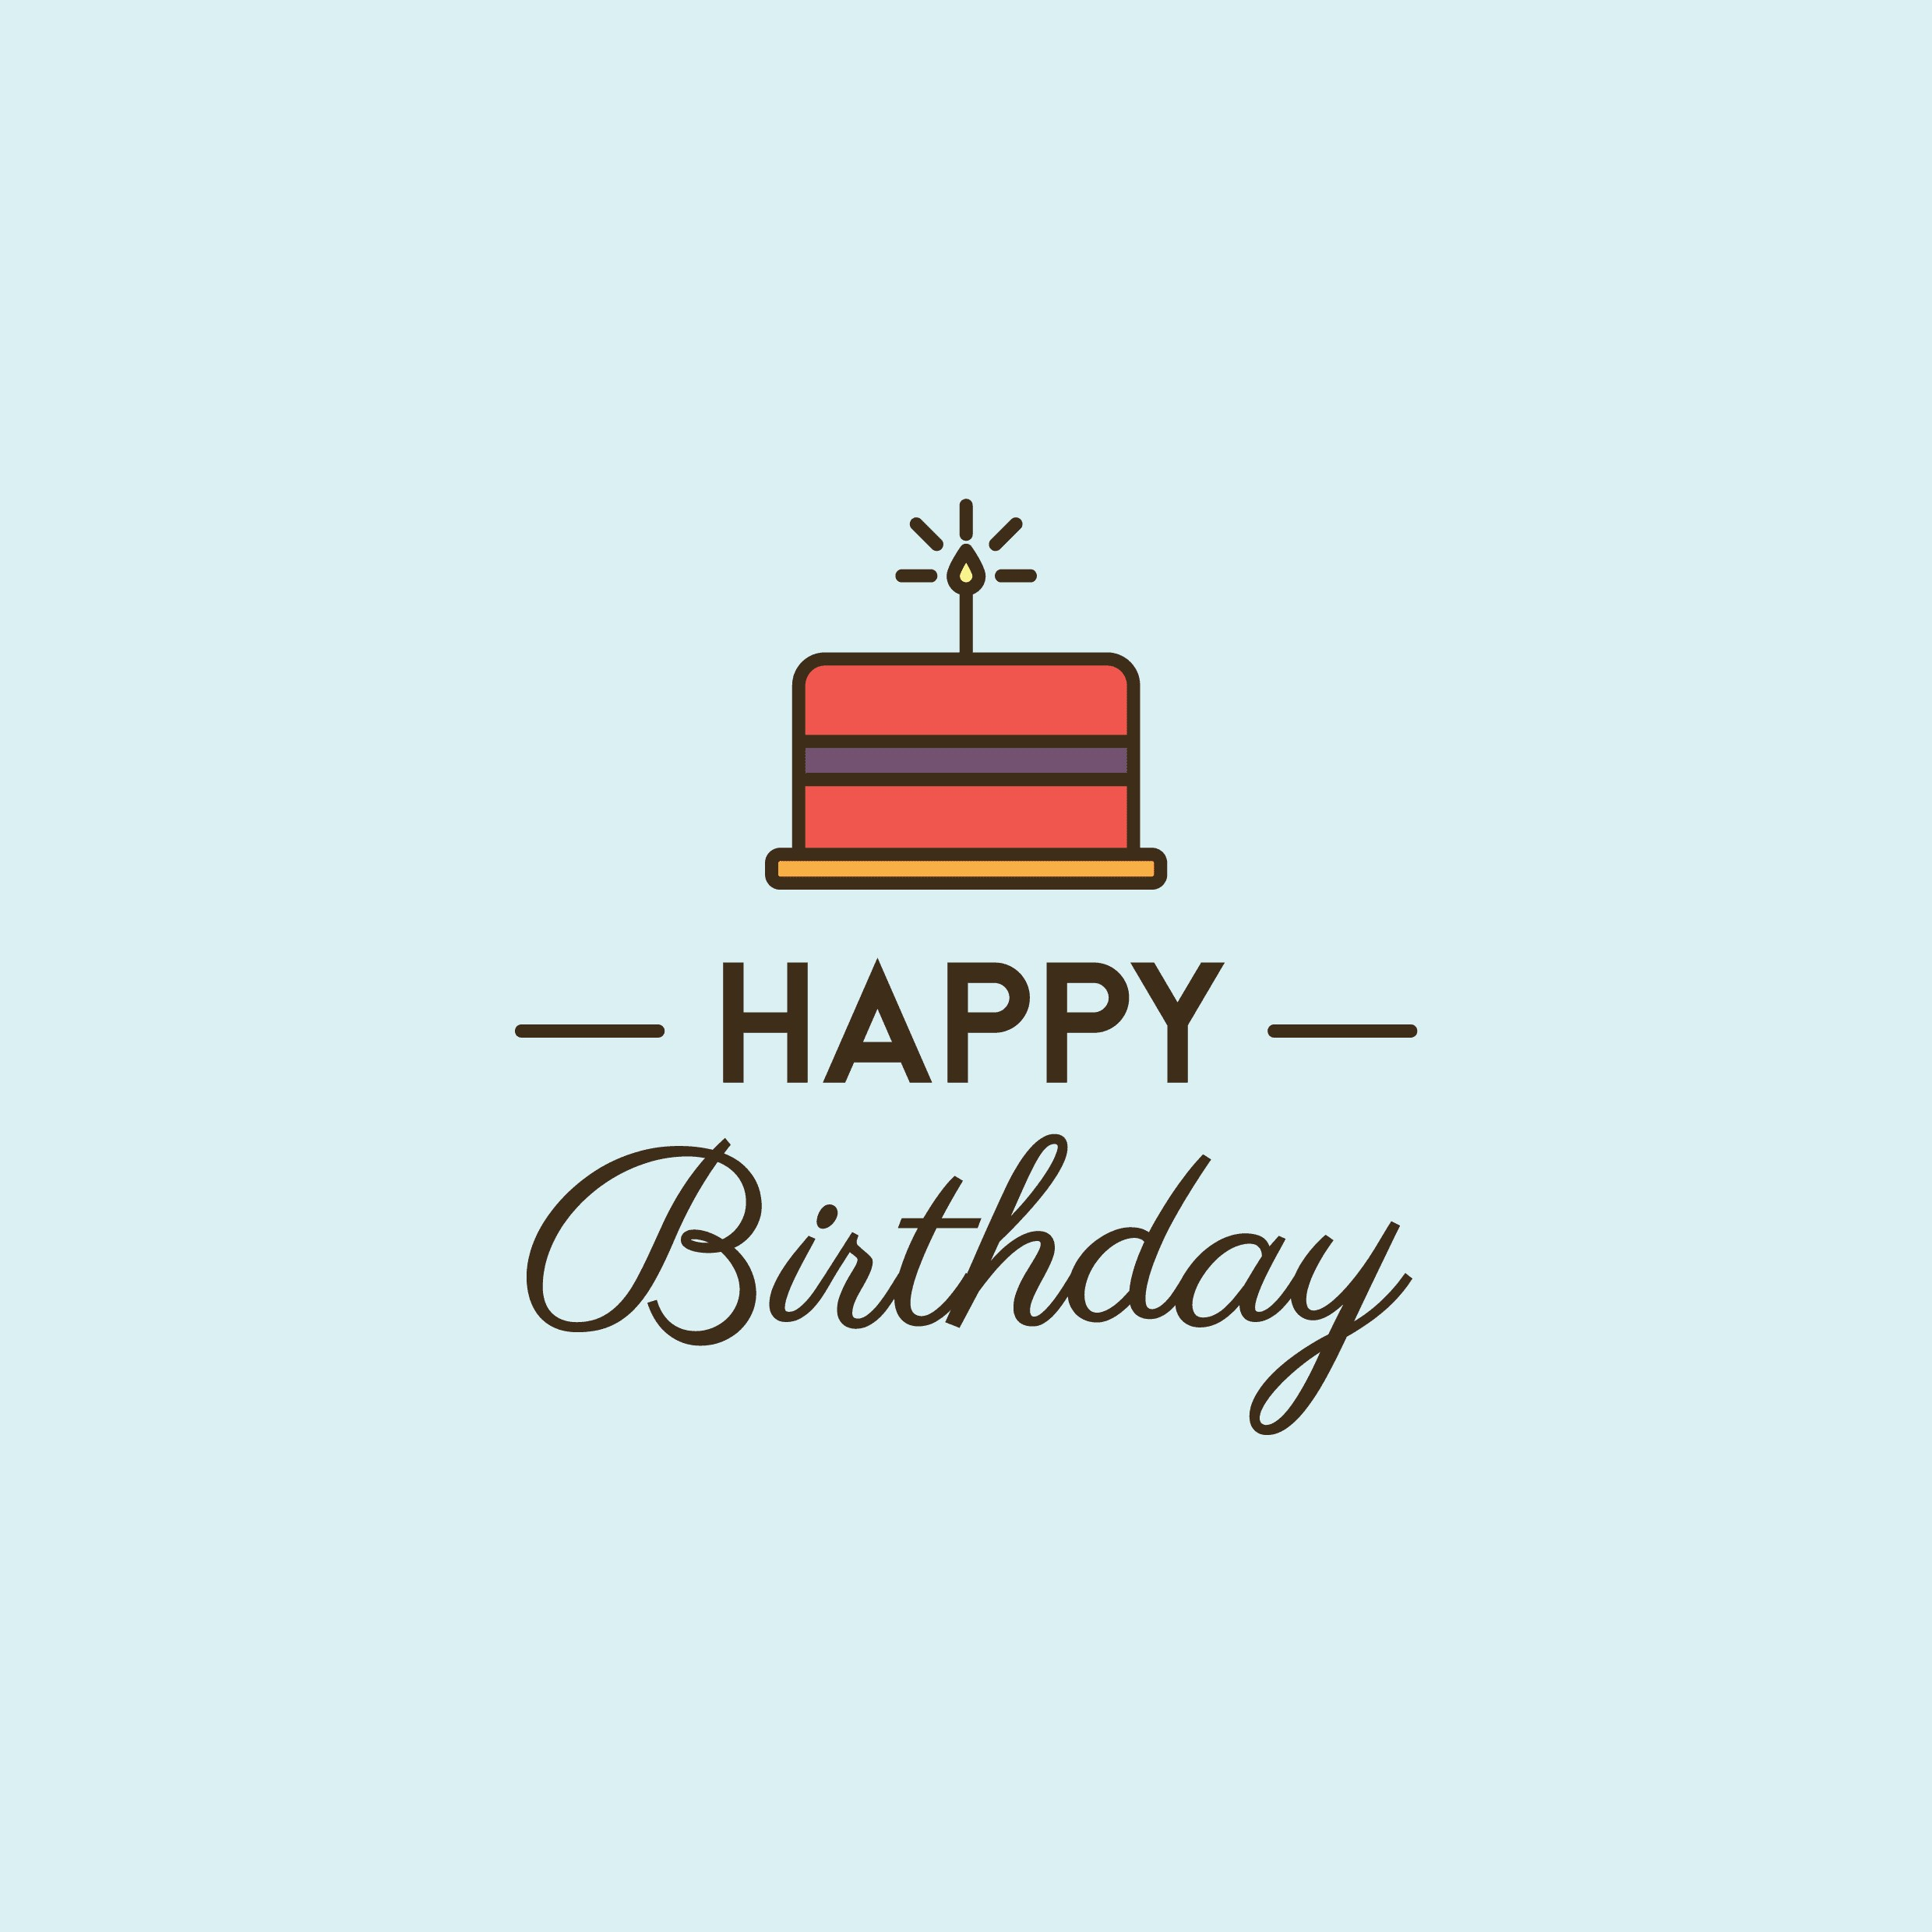 one direction singing happy birthday card ; one-direction-singing-happy-birthday-card-lovely-how-to-send-birthday-cards-on-of-one-direction-singing-happy-birthday-card